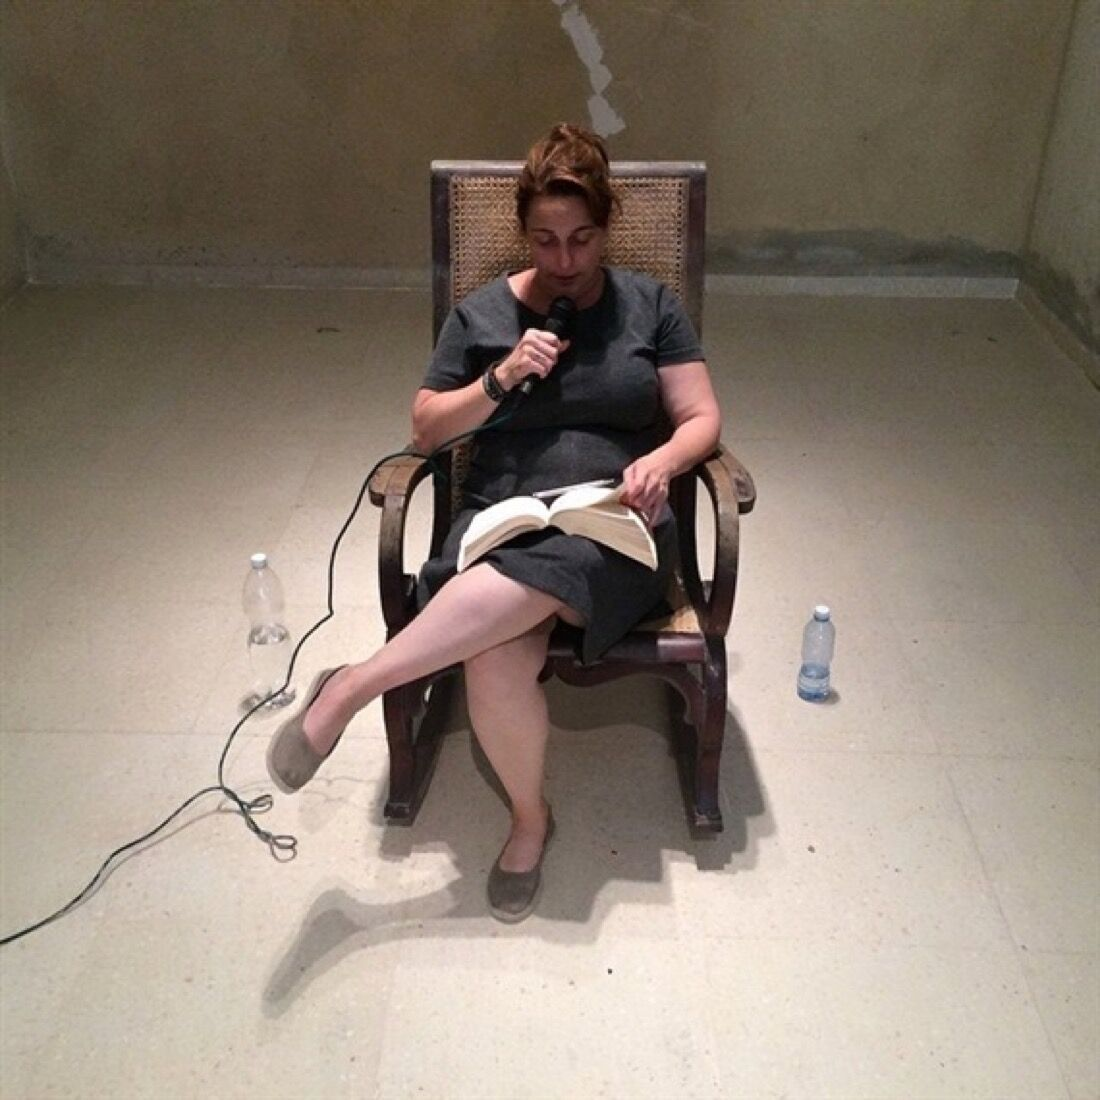 Tania Bruguera, Opening Session of the foundational process of the Hannah Arendt International Institute of Artivism, 2015.Photo by Pablo León de la Barra, courtesy of Studio Bruguera and Yo Tambien Exijo Platform.